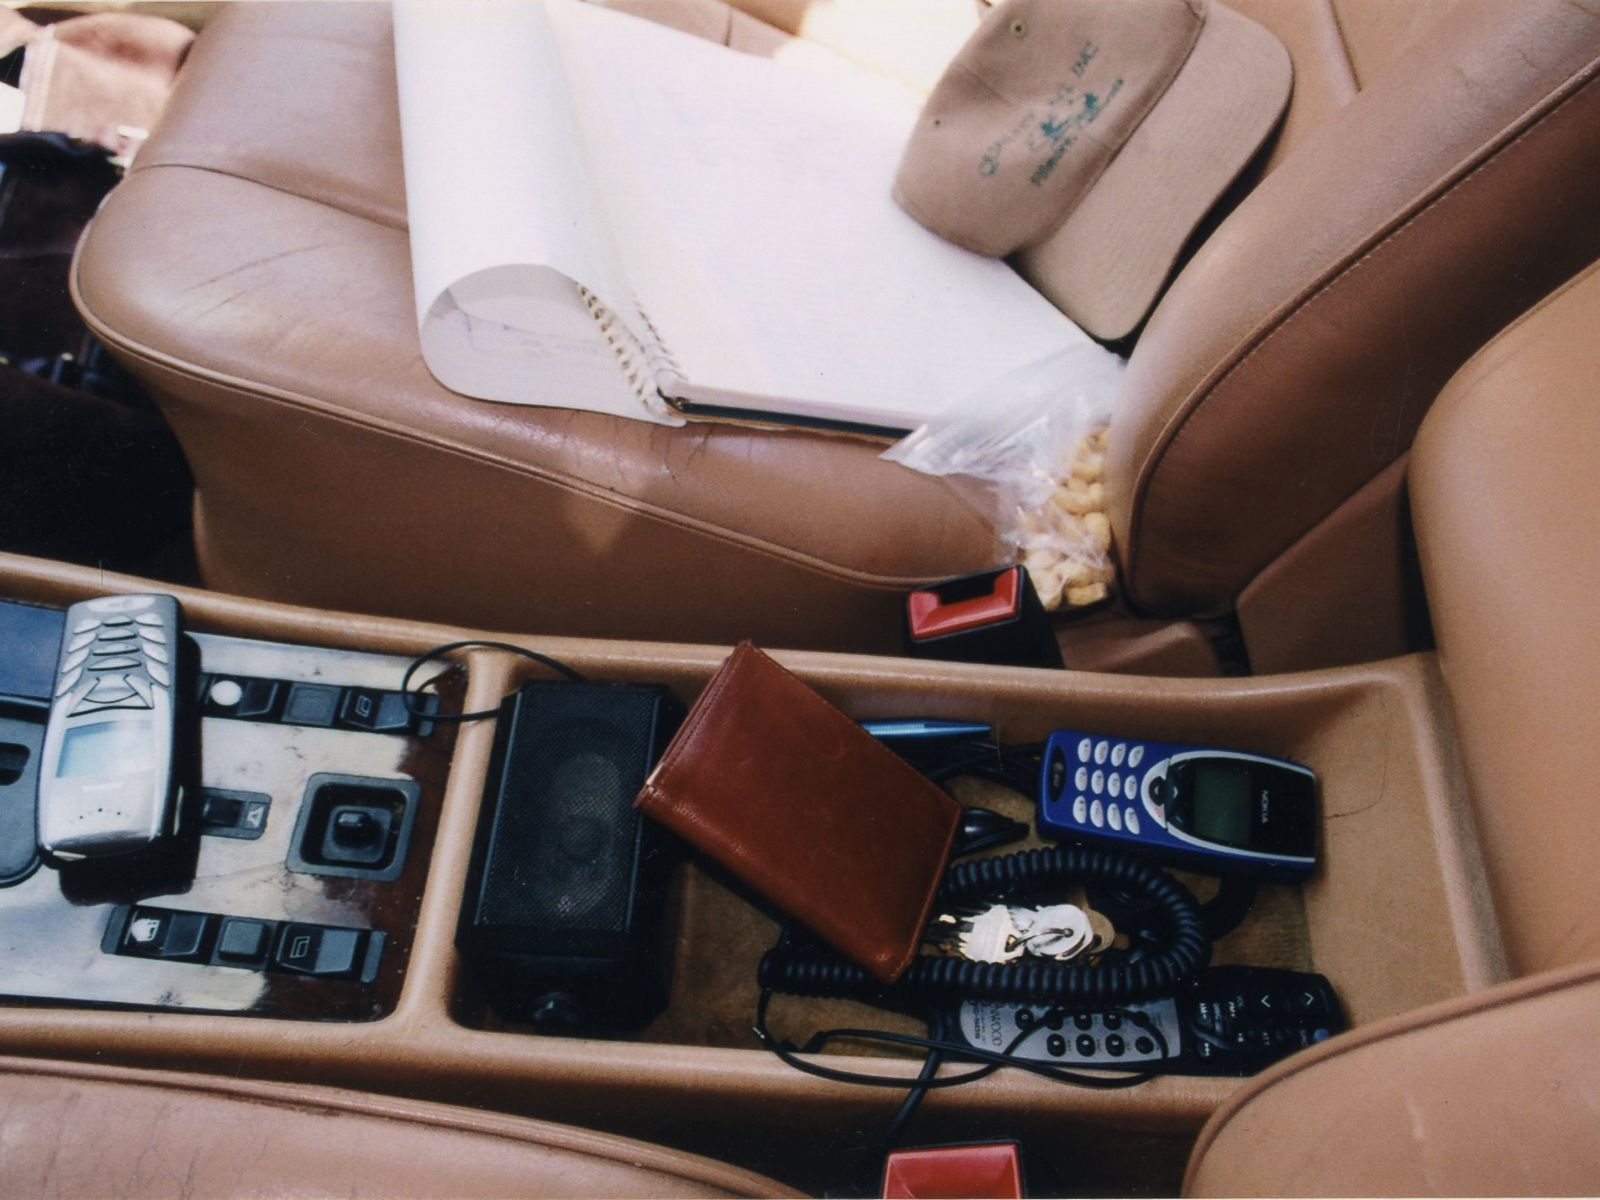 What police found in Scott Peterson's car after Laci Peterson's body